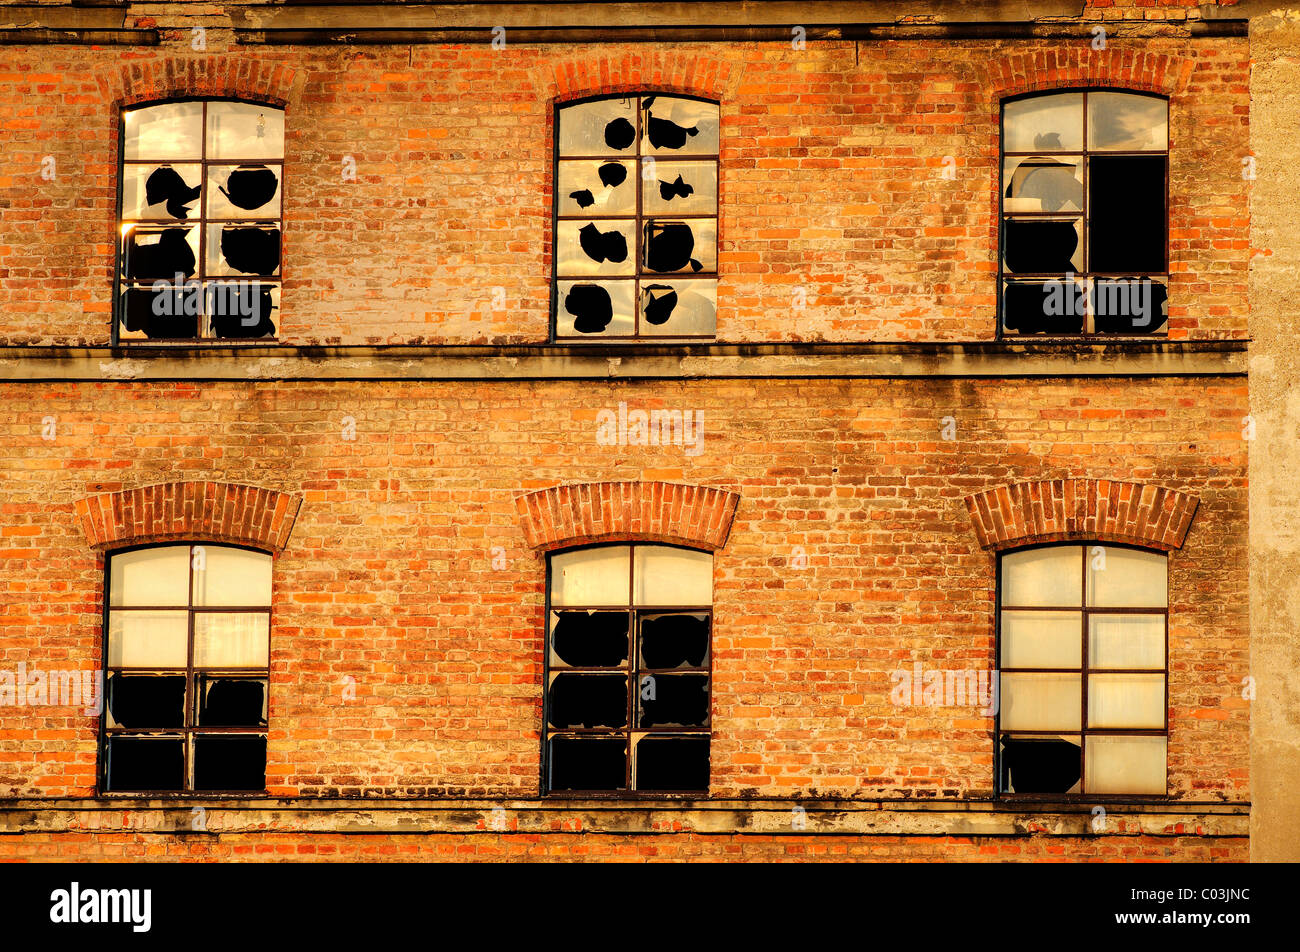 Broken windows on the old factory facade, Kempten, Bavaria, Germany, Europe - Stock Image